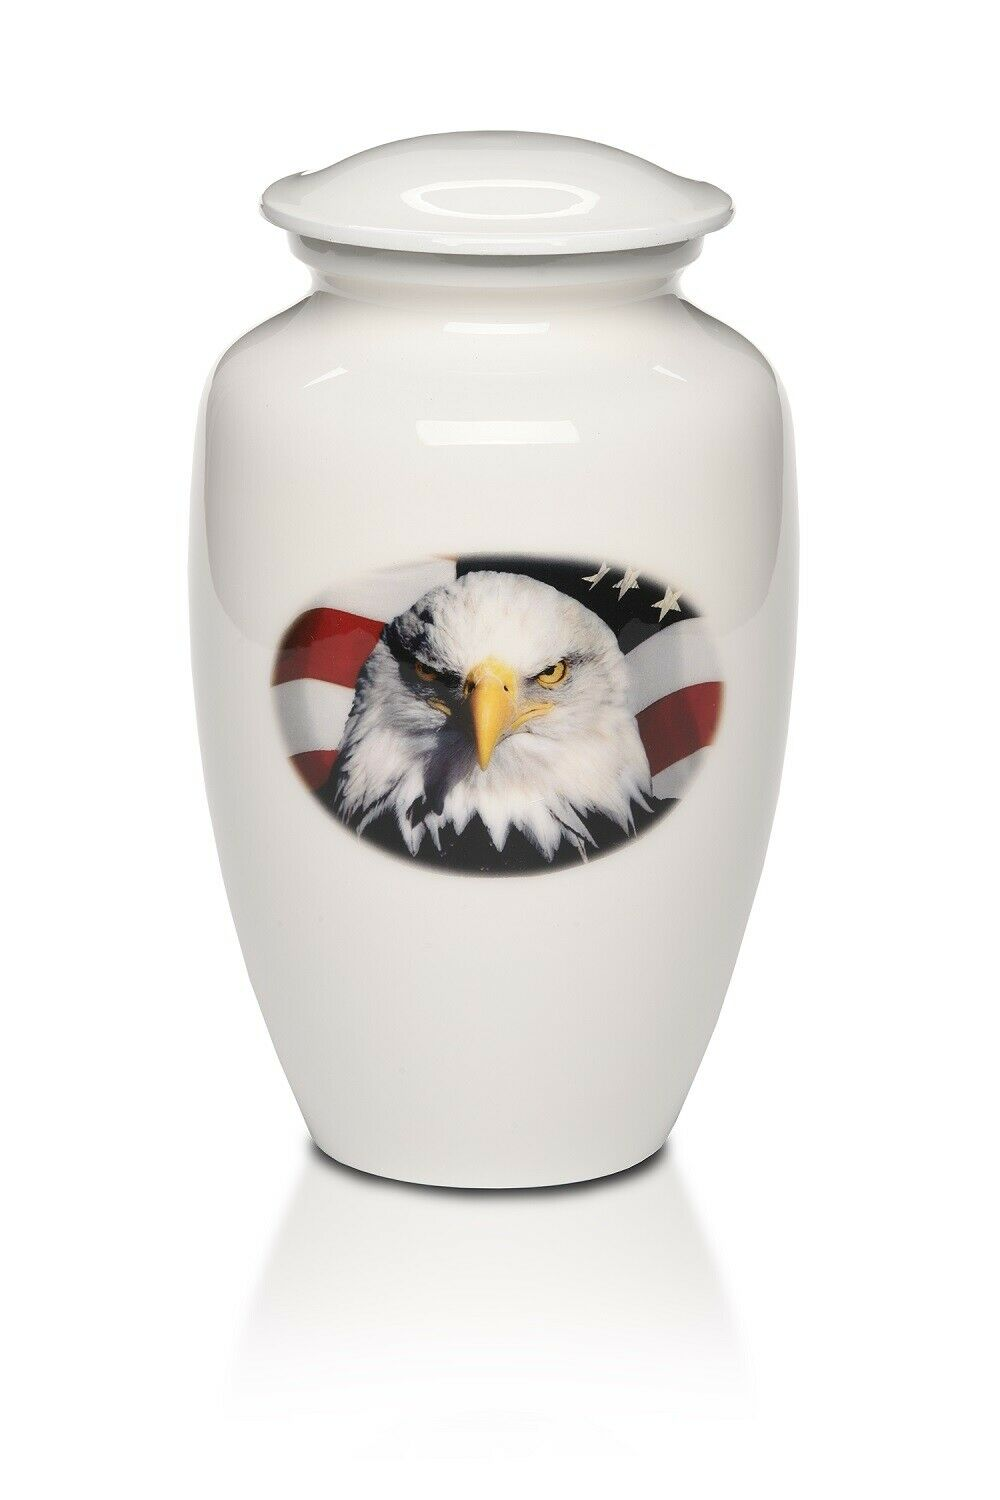 Large/Adult 220 Cubic Inch Alloy Funeral Cremation Urn American Flag with Eagle